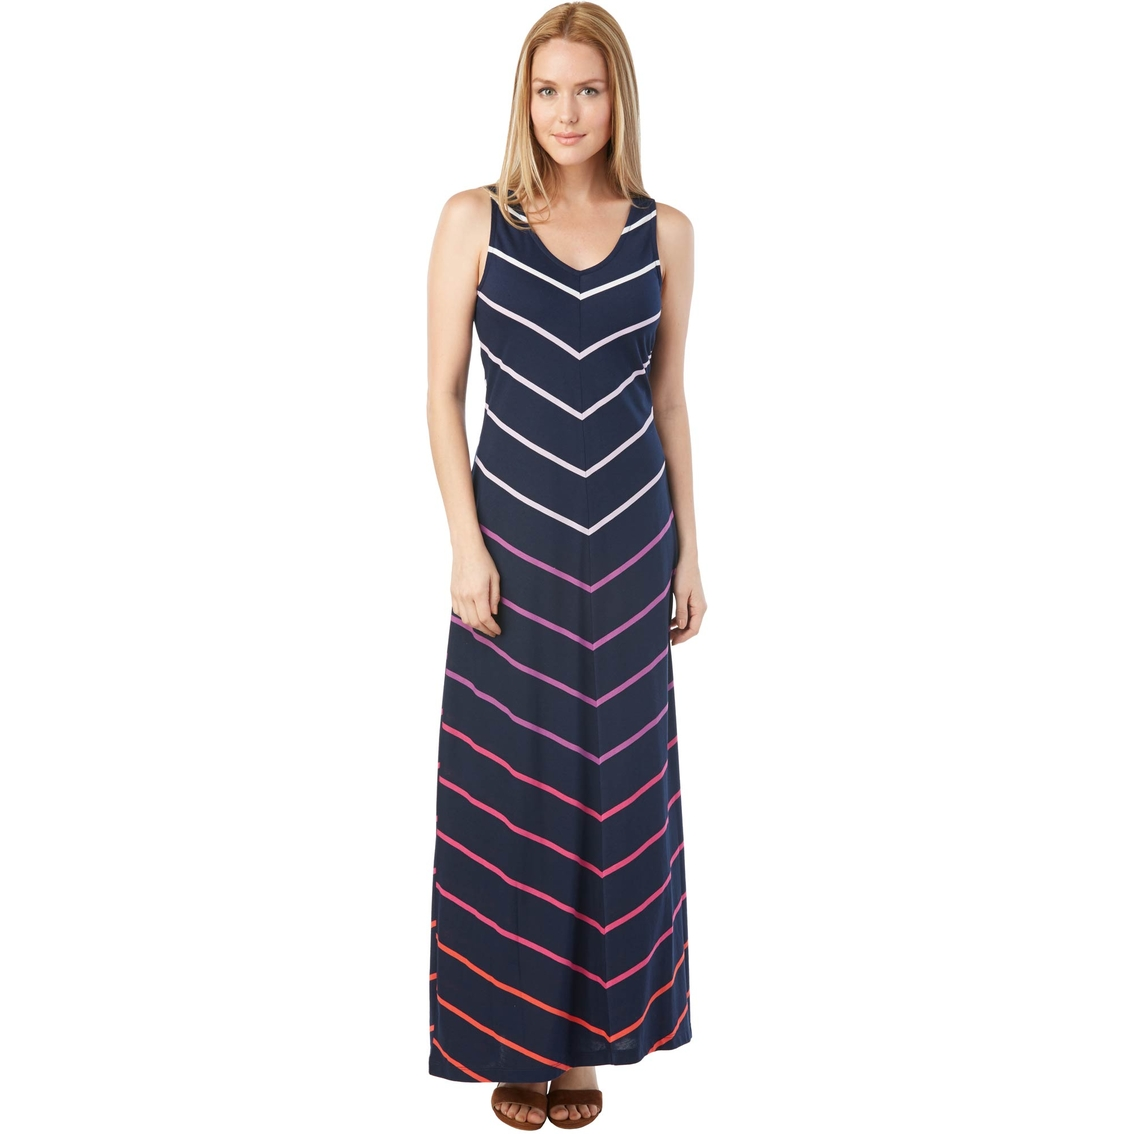 e496a47ba24 Tommy Hilfiger Brittany Chevron Maxi Dress | Dresses | Apparel ...